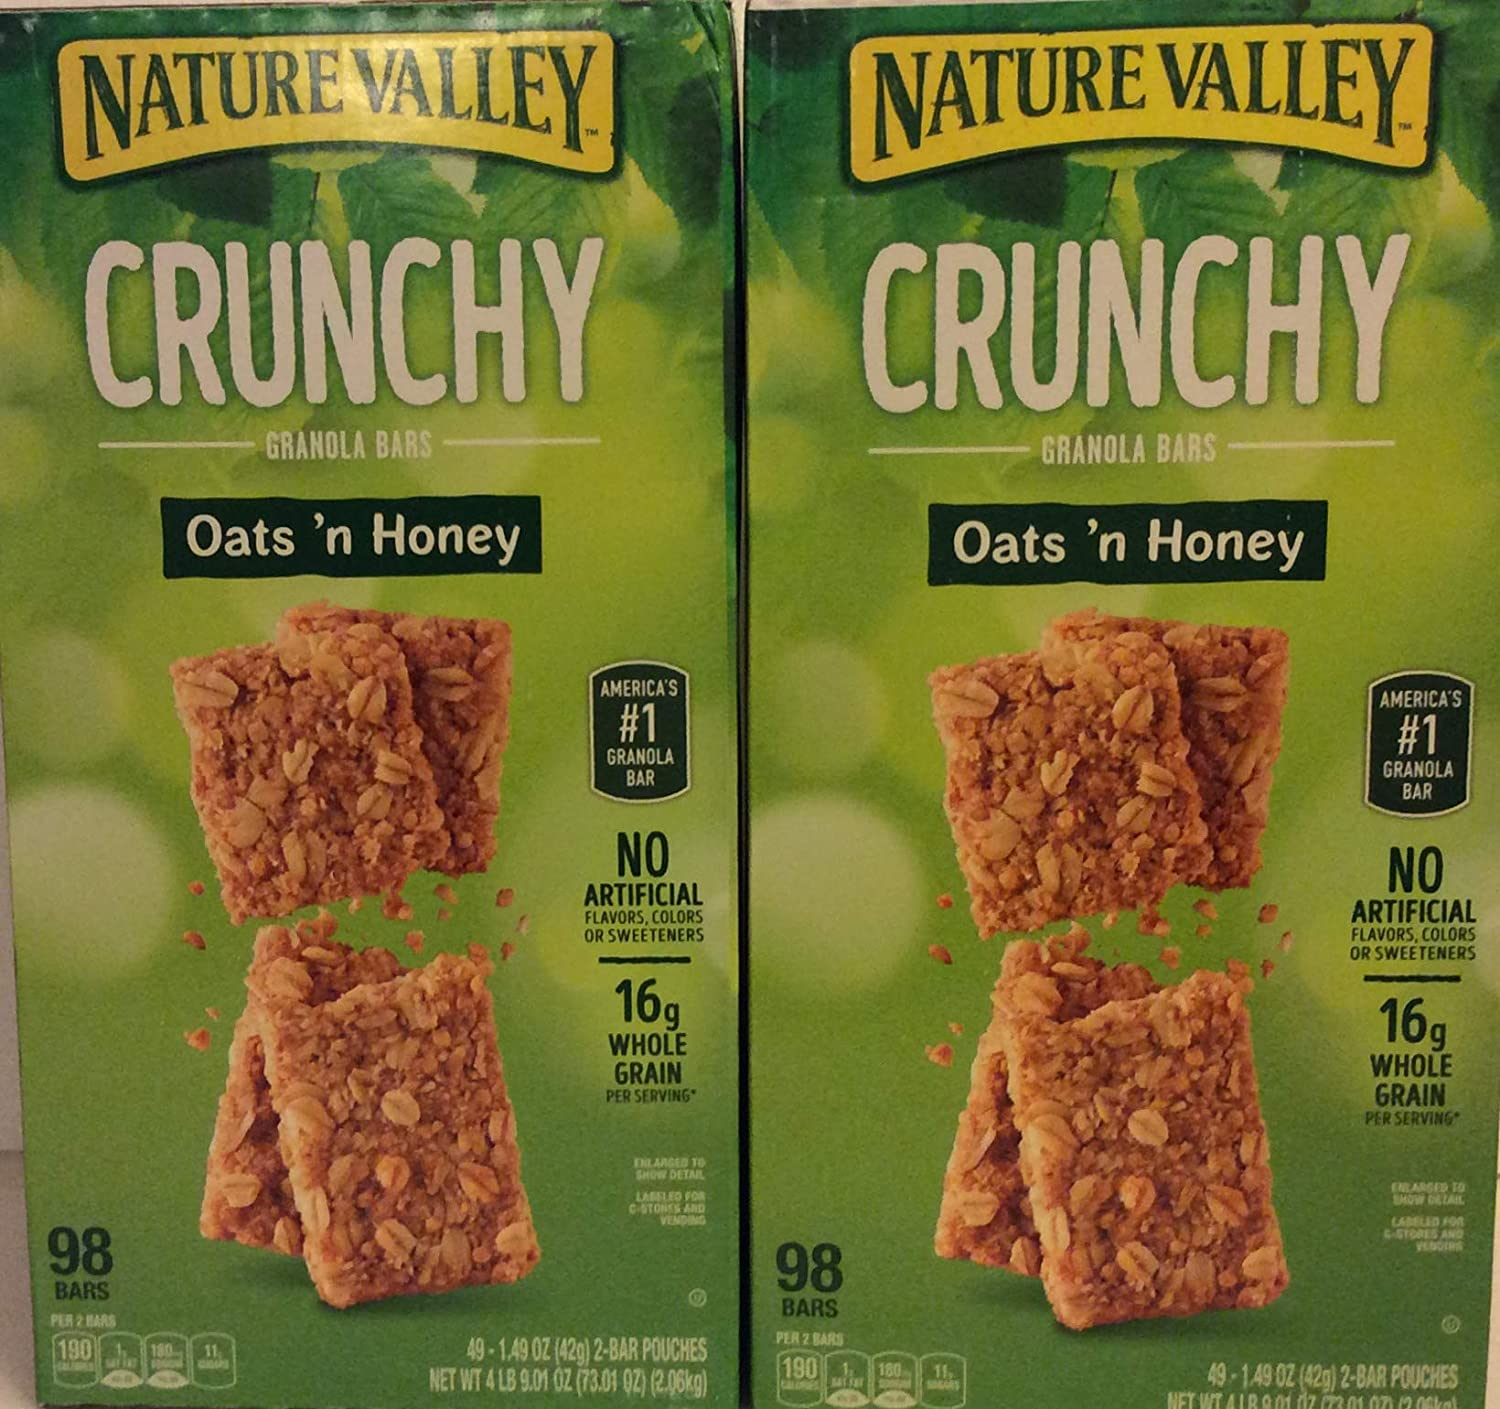 Nature Valley (2 PACK BOX Super Saver) Crunchy Granola Bars Oats 'N Honey - 98 bars In Each Box 2 Bar Pouches of 49ct- 1.49oz